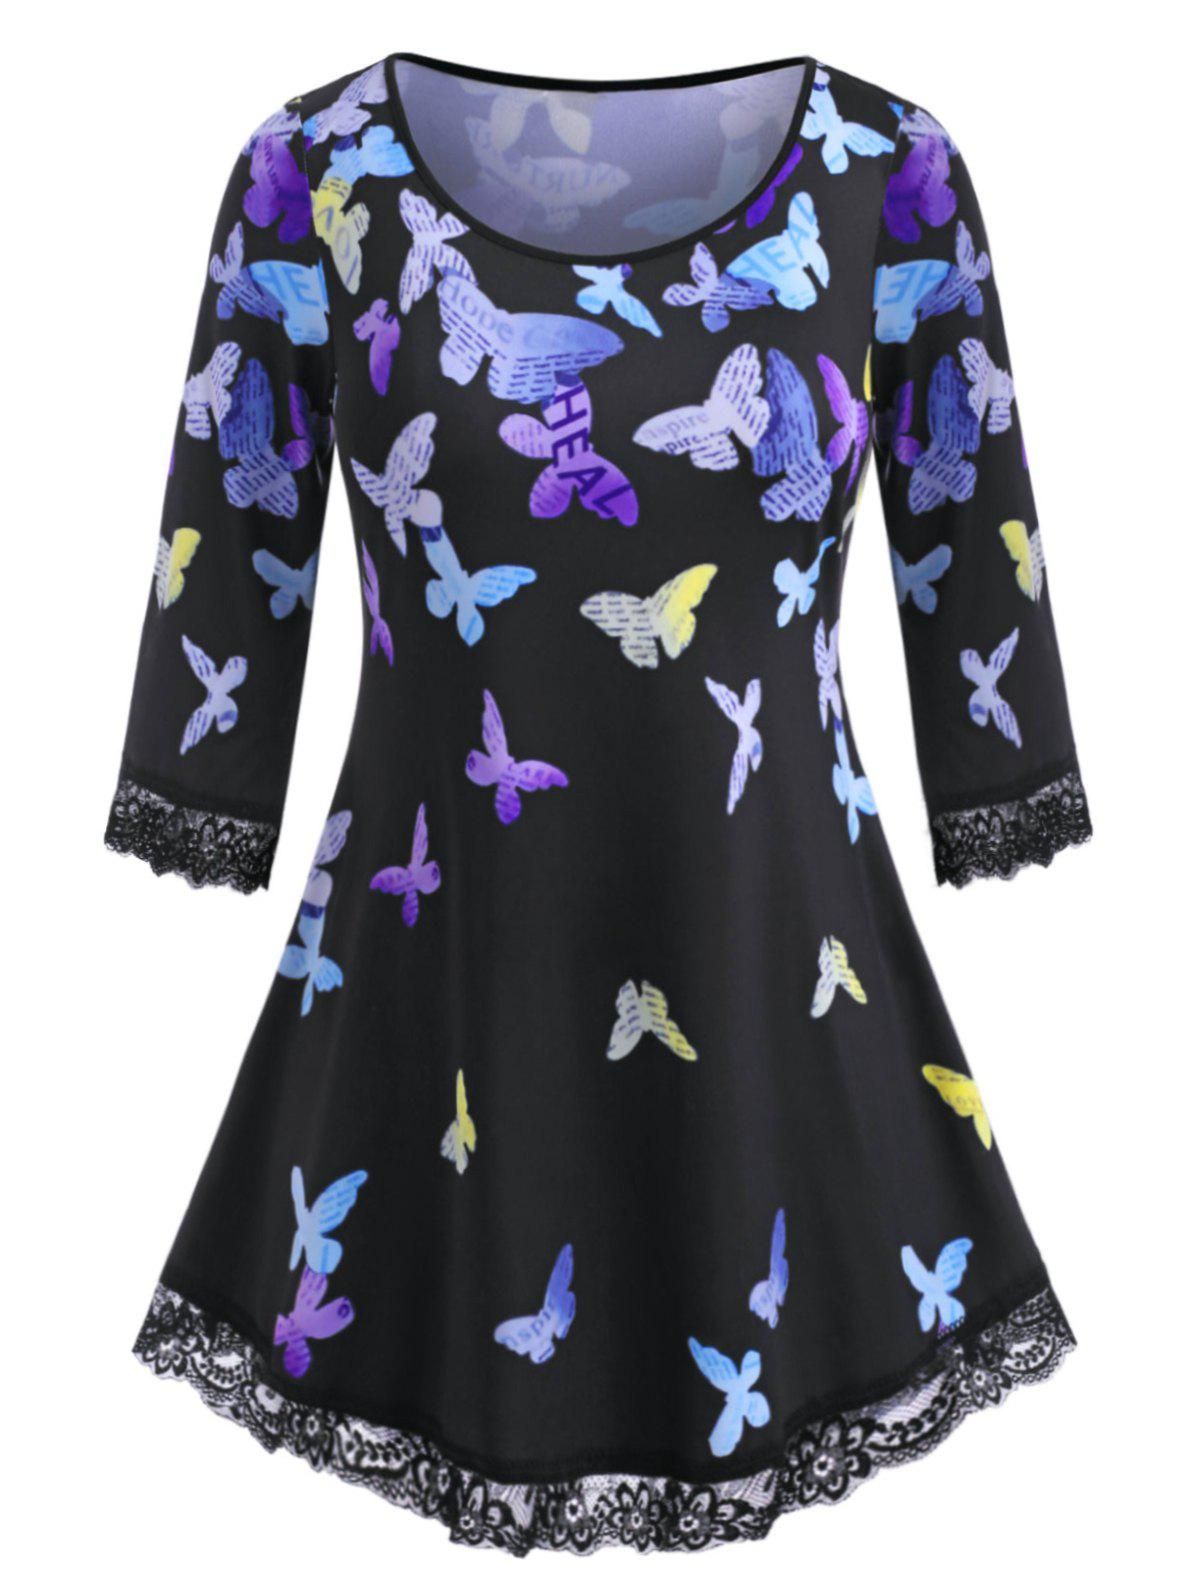 Multicolored Butterfly Scalloped Lace Trim Plus Size Top - BLACK 3X